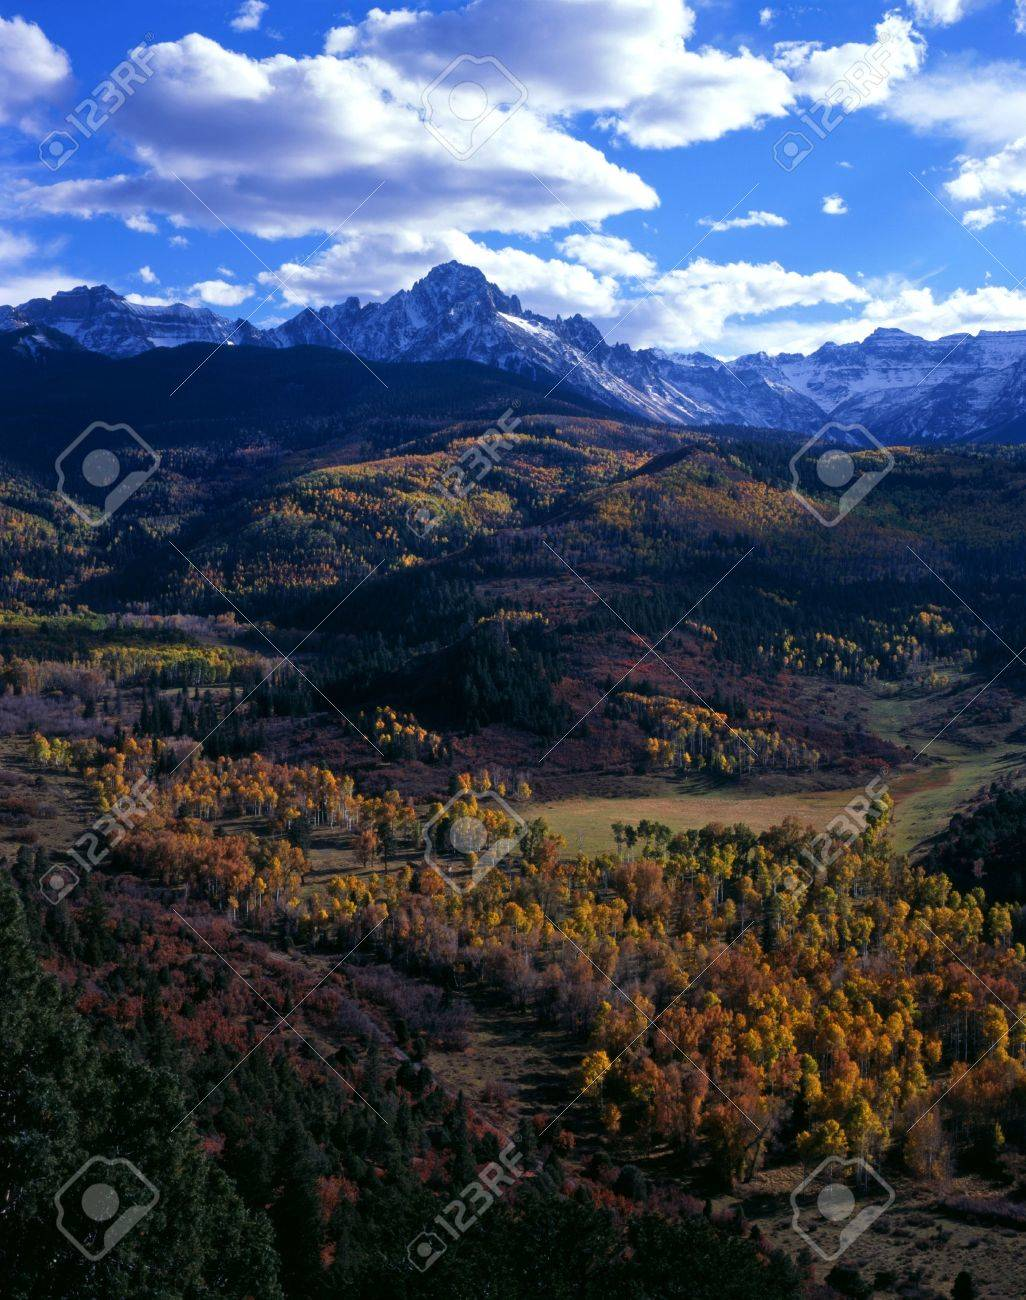 Mt. Sneffels in the Uncompahgre National Foreast, Colorado. Stock Photo - 2162818